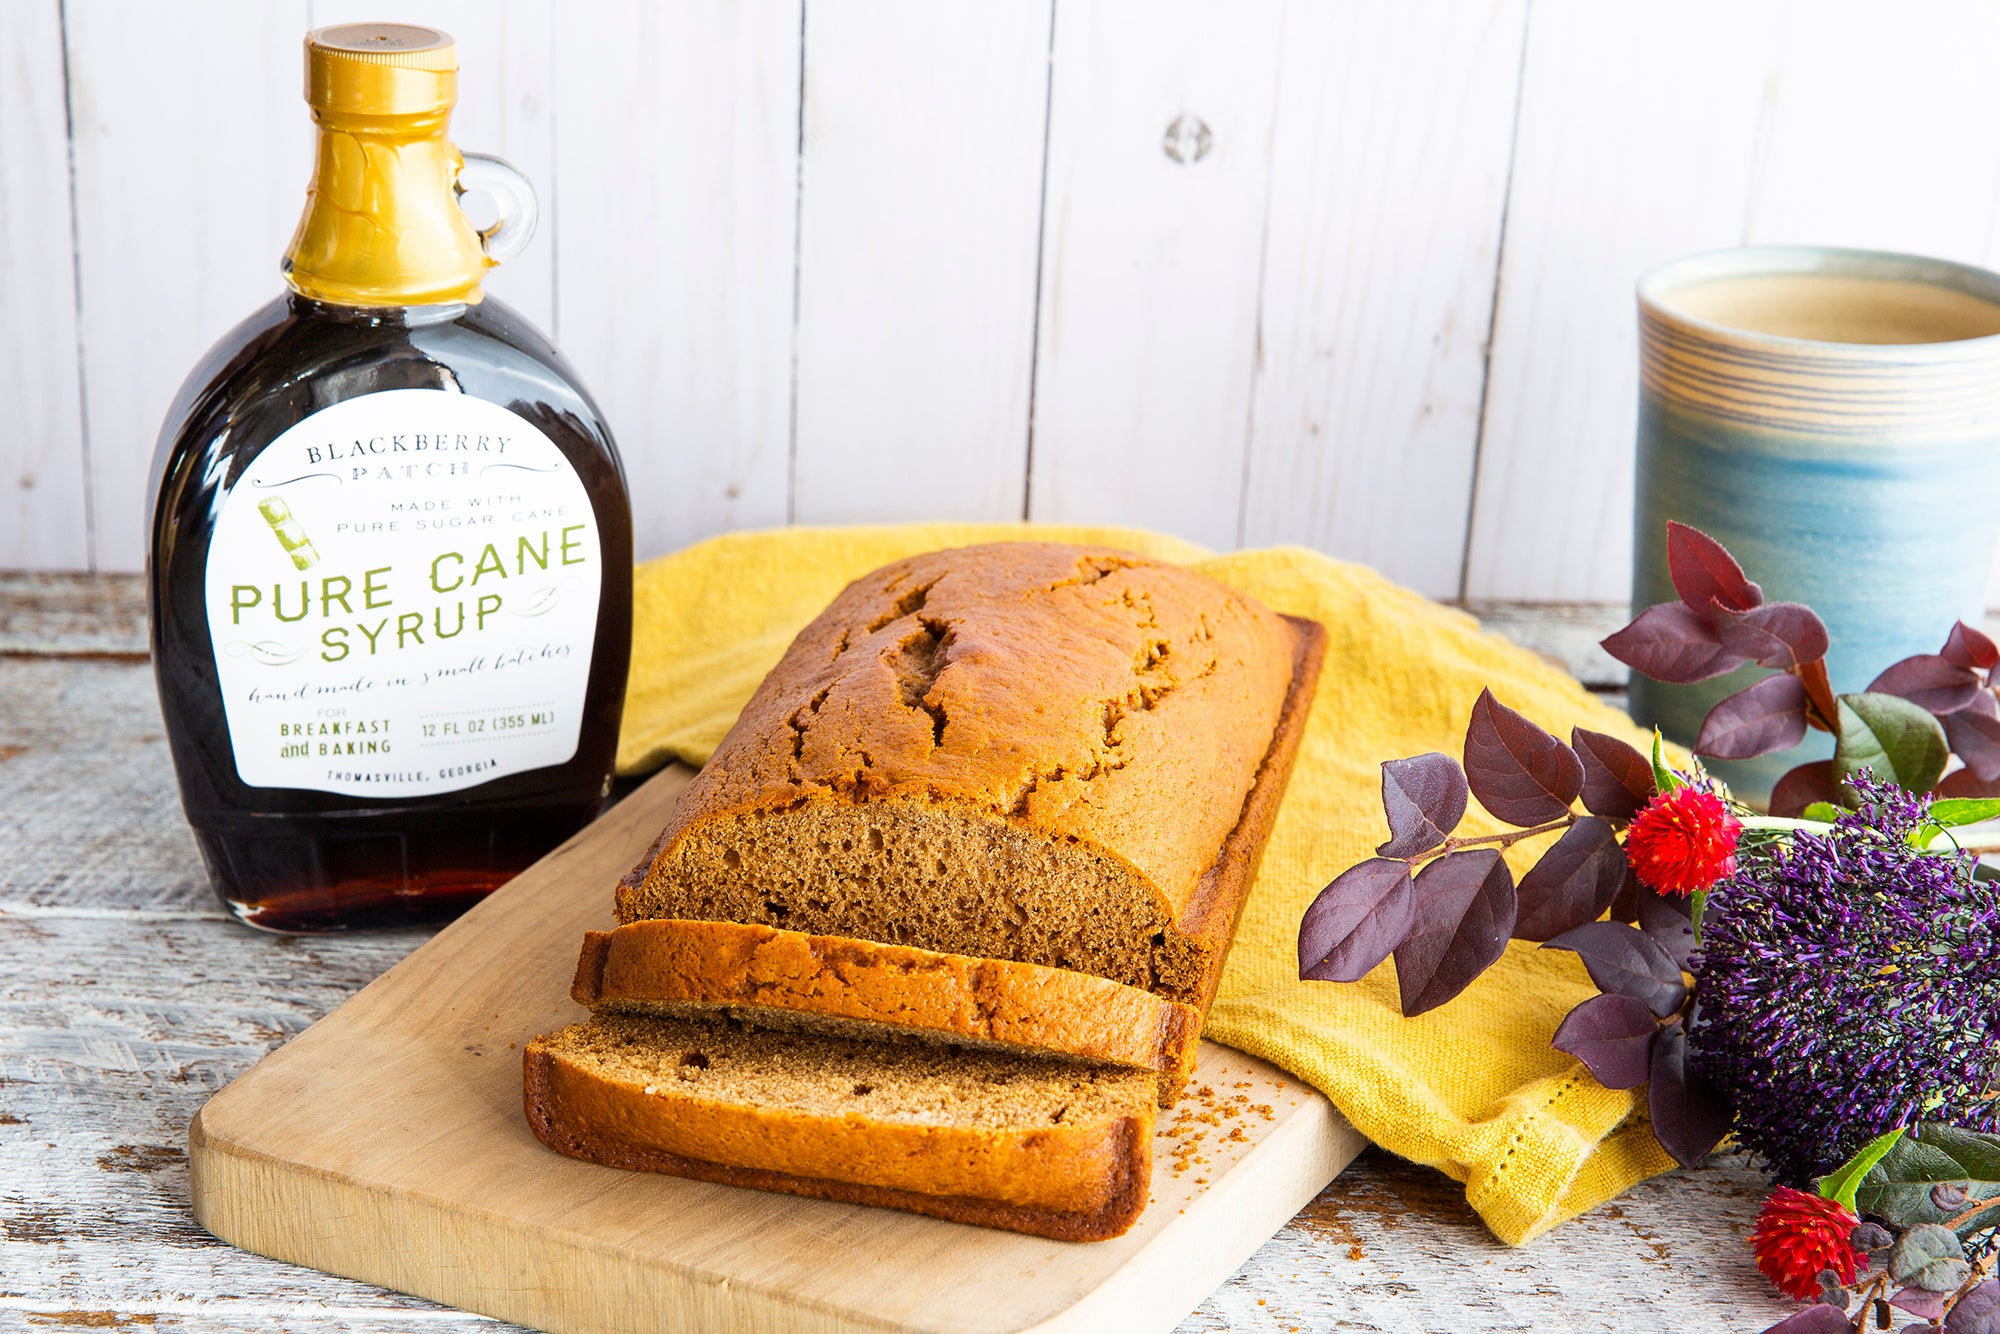 Recipe photo of Cane Syrup Loaf Cake using Blackberry Patch Pure Cane Syrup